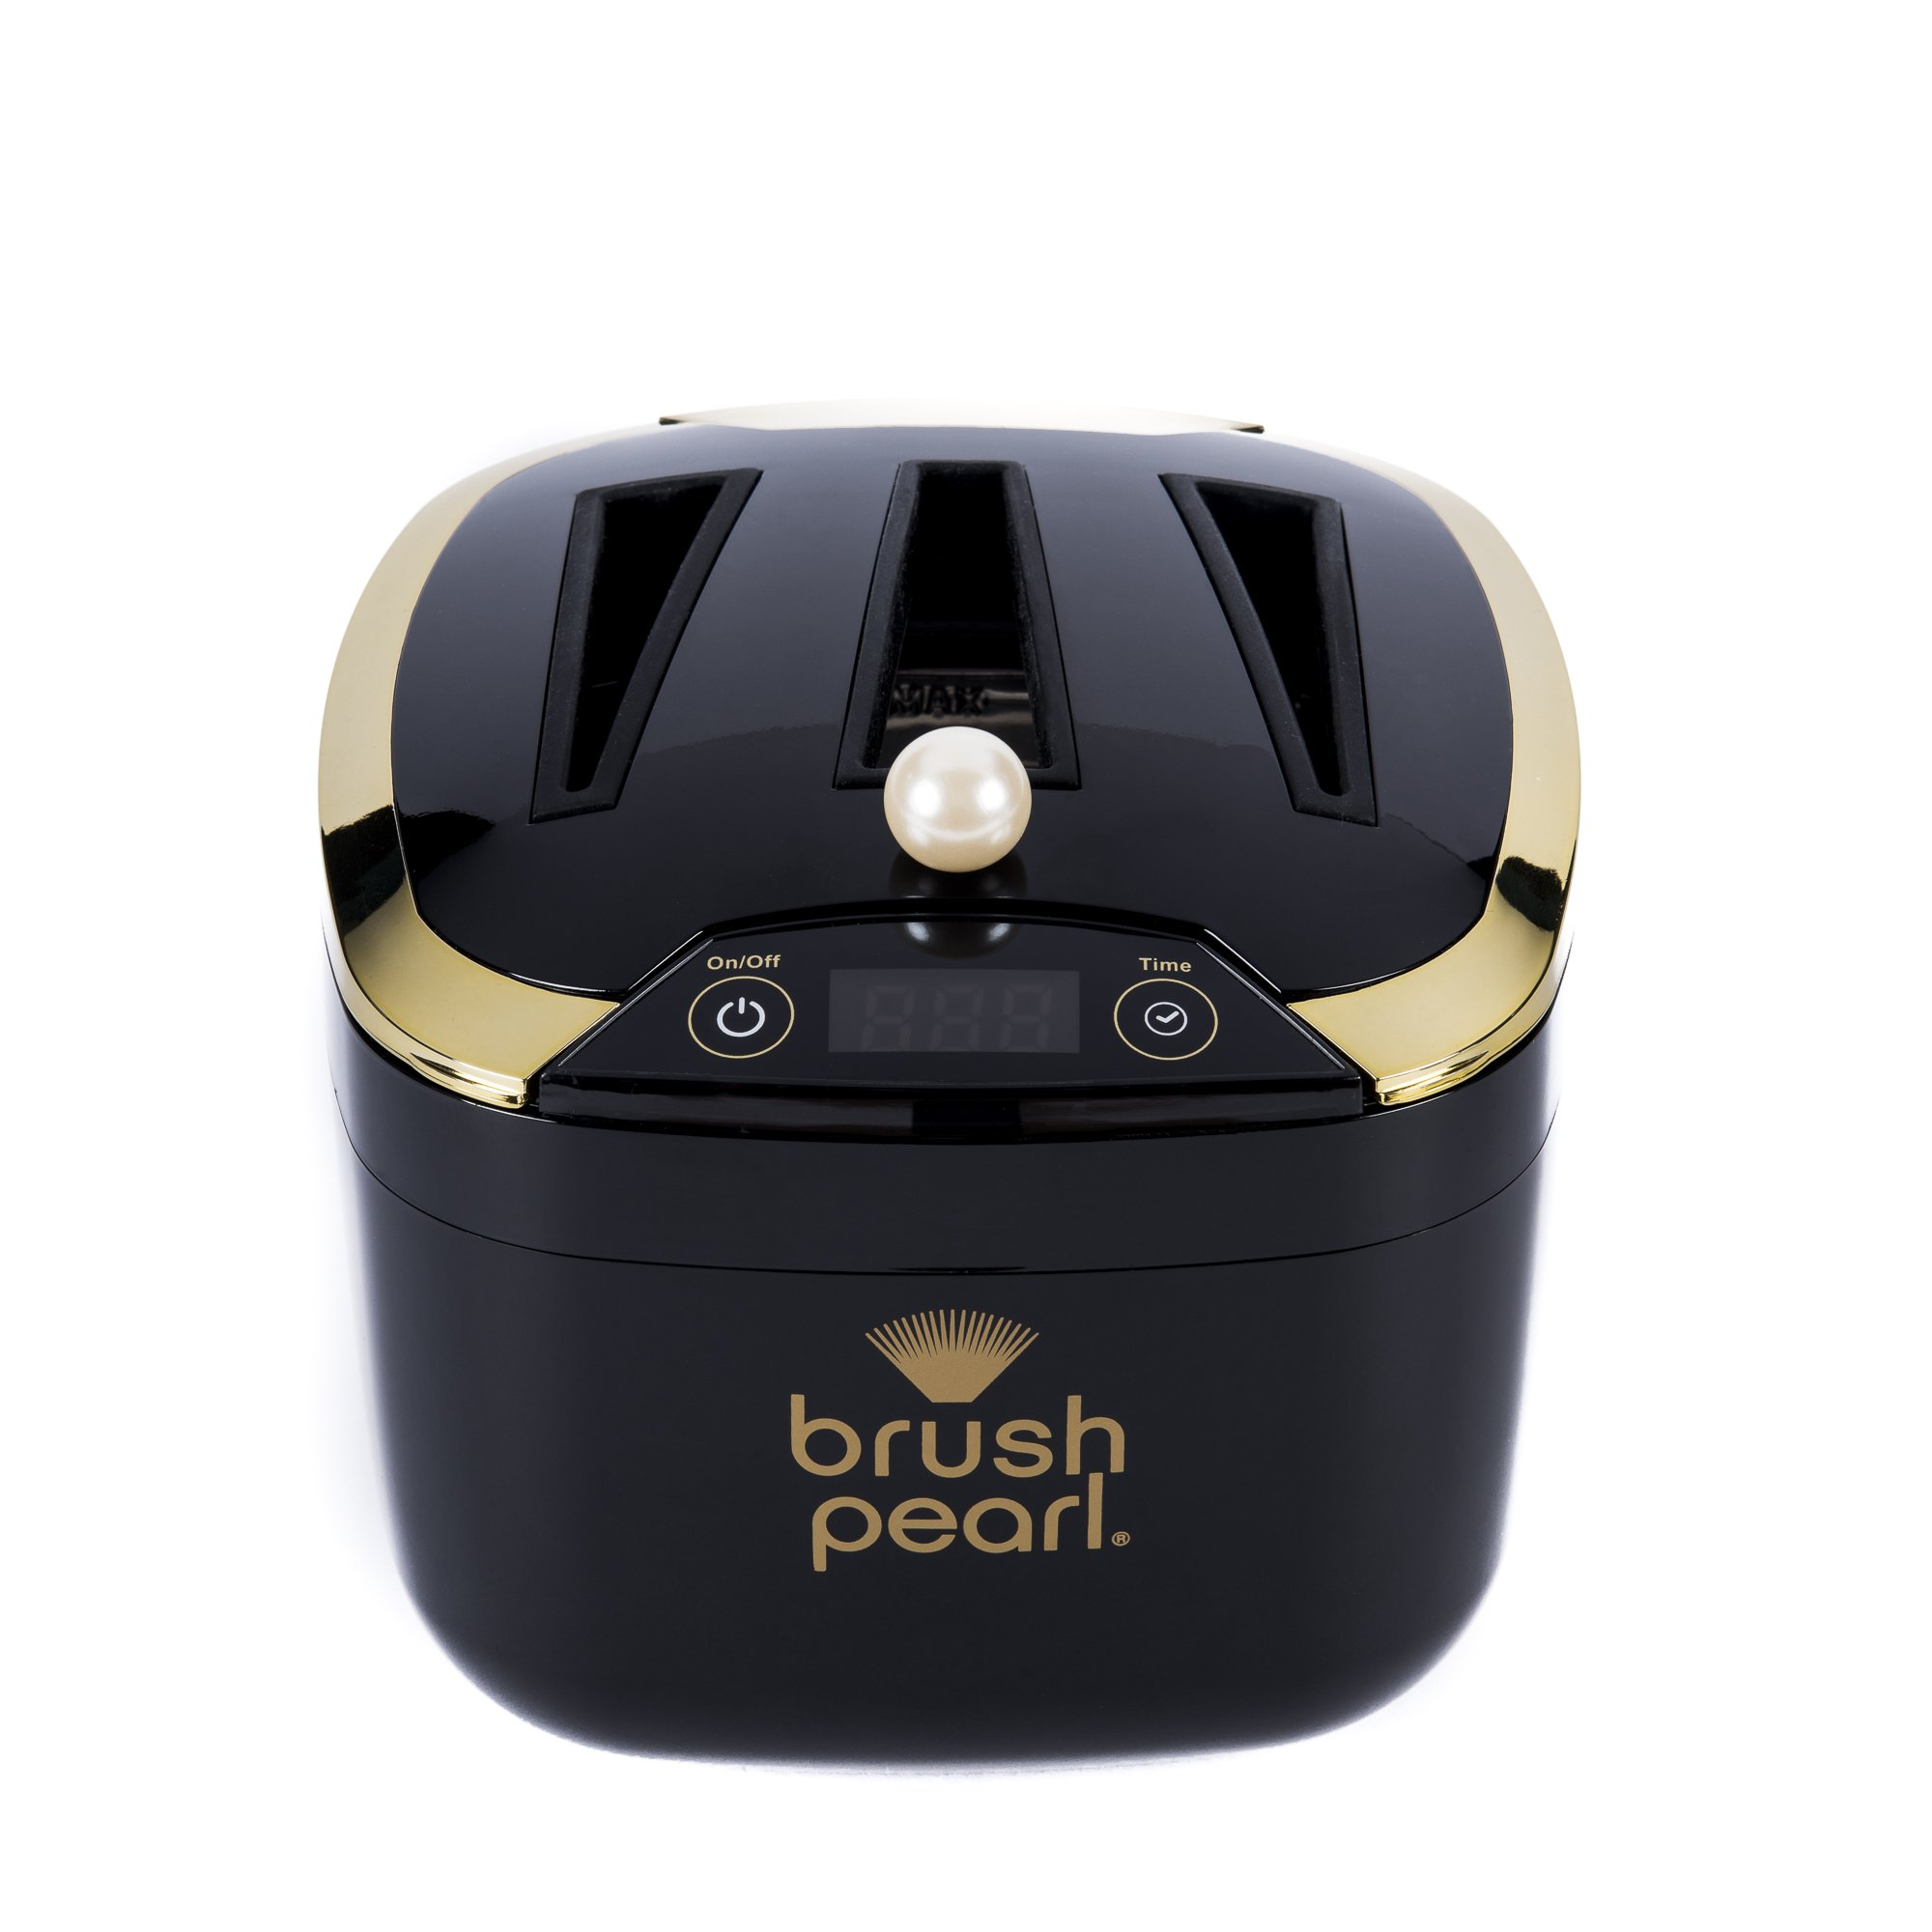 BrushPearl Electric Professional Strength Ultrasonic Makeup Brush Cleaning Device, Keeps Cosmetic Make Up Brushes Soft & Clean with the Push of a Button, BP 400, Black, Bonus 4 oz. Cleanser